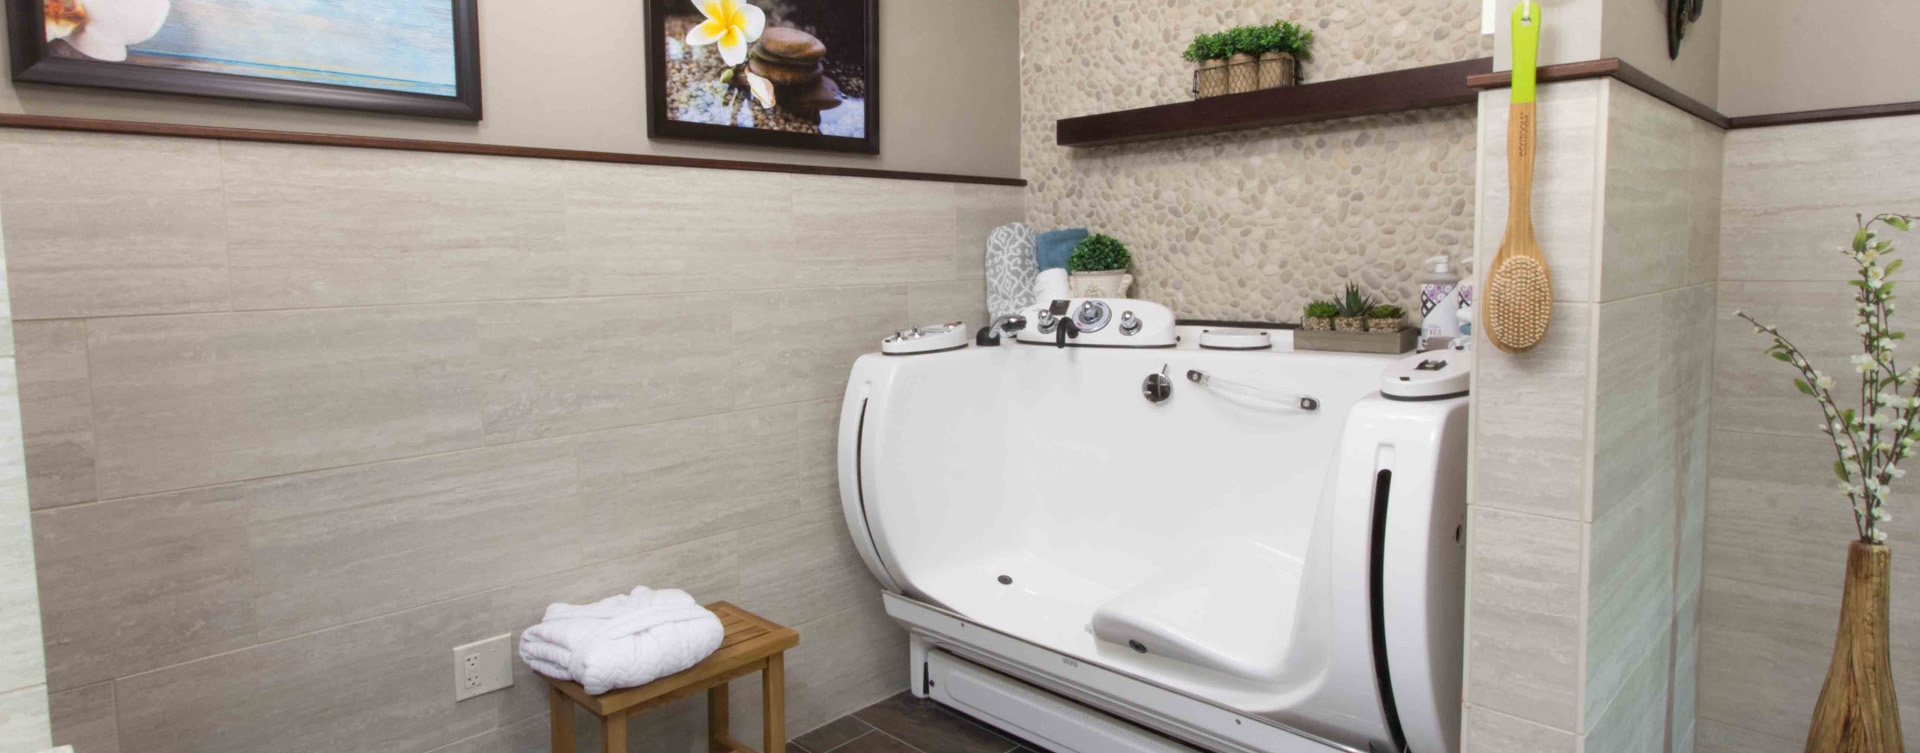 Hydrotherapy eases achy joints in our whirlpool at Bickford of Gurnee